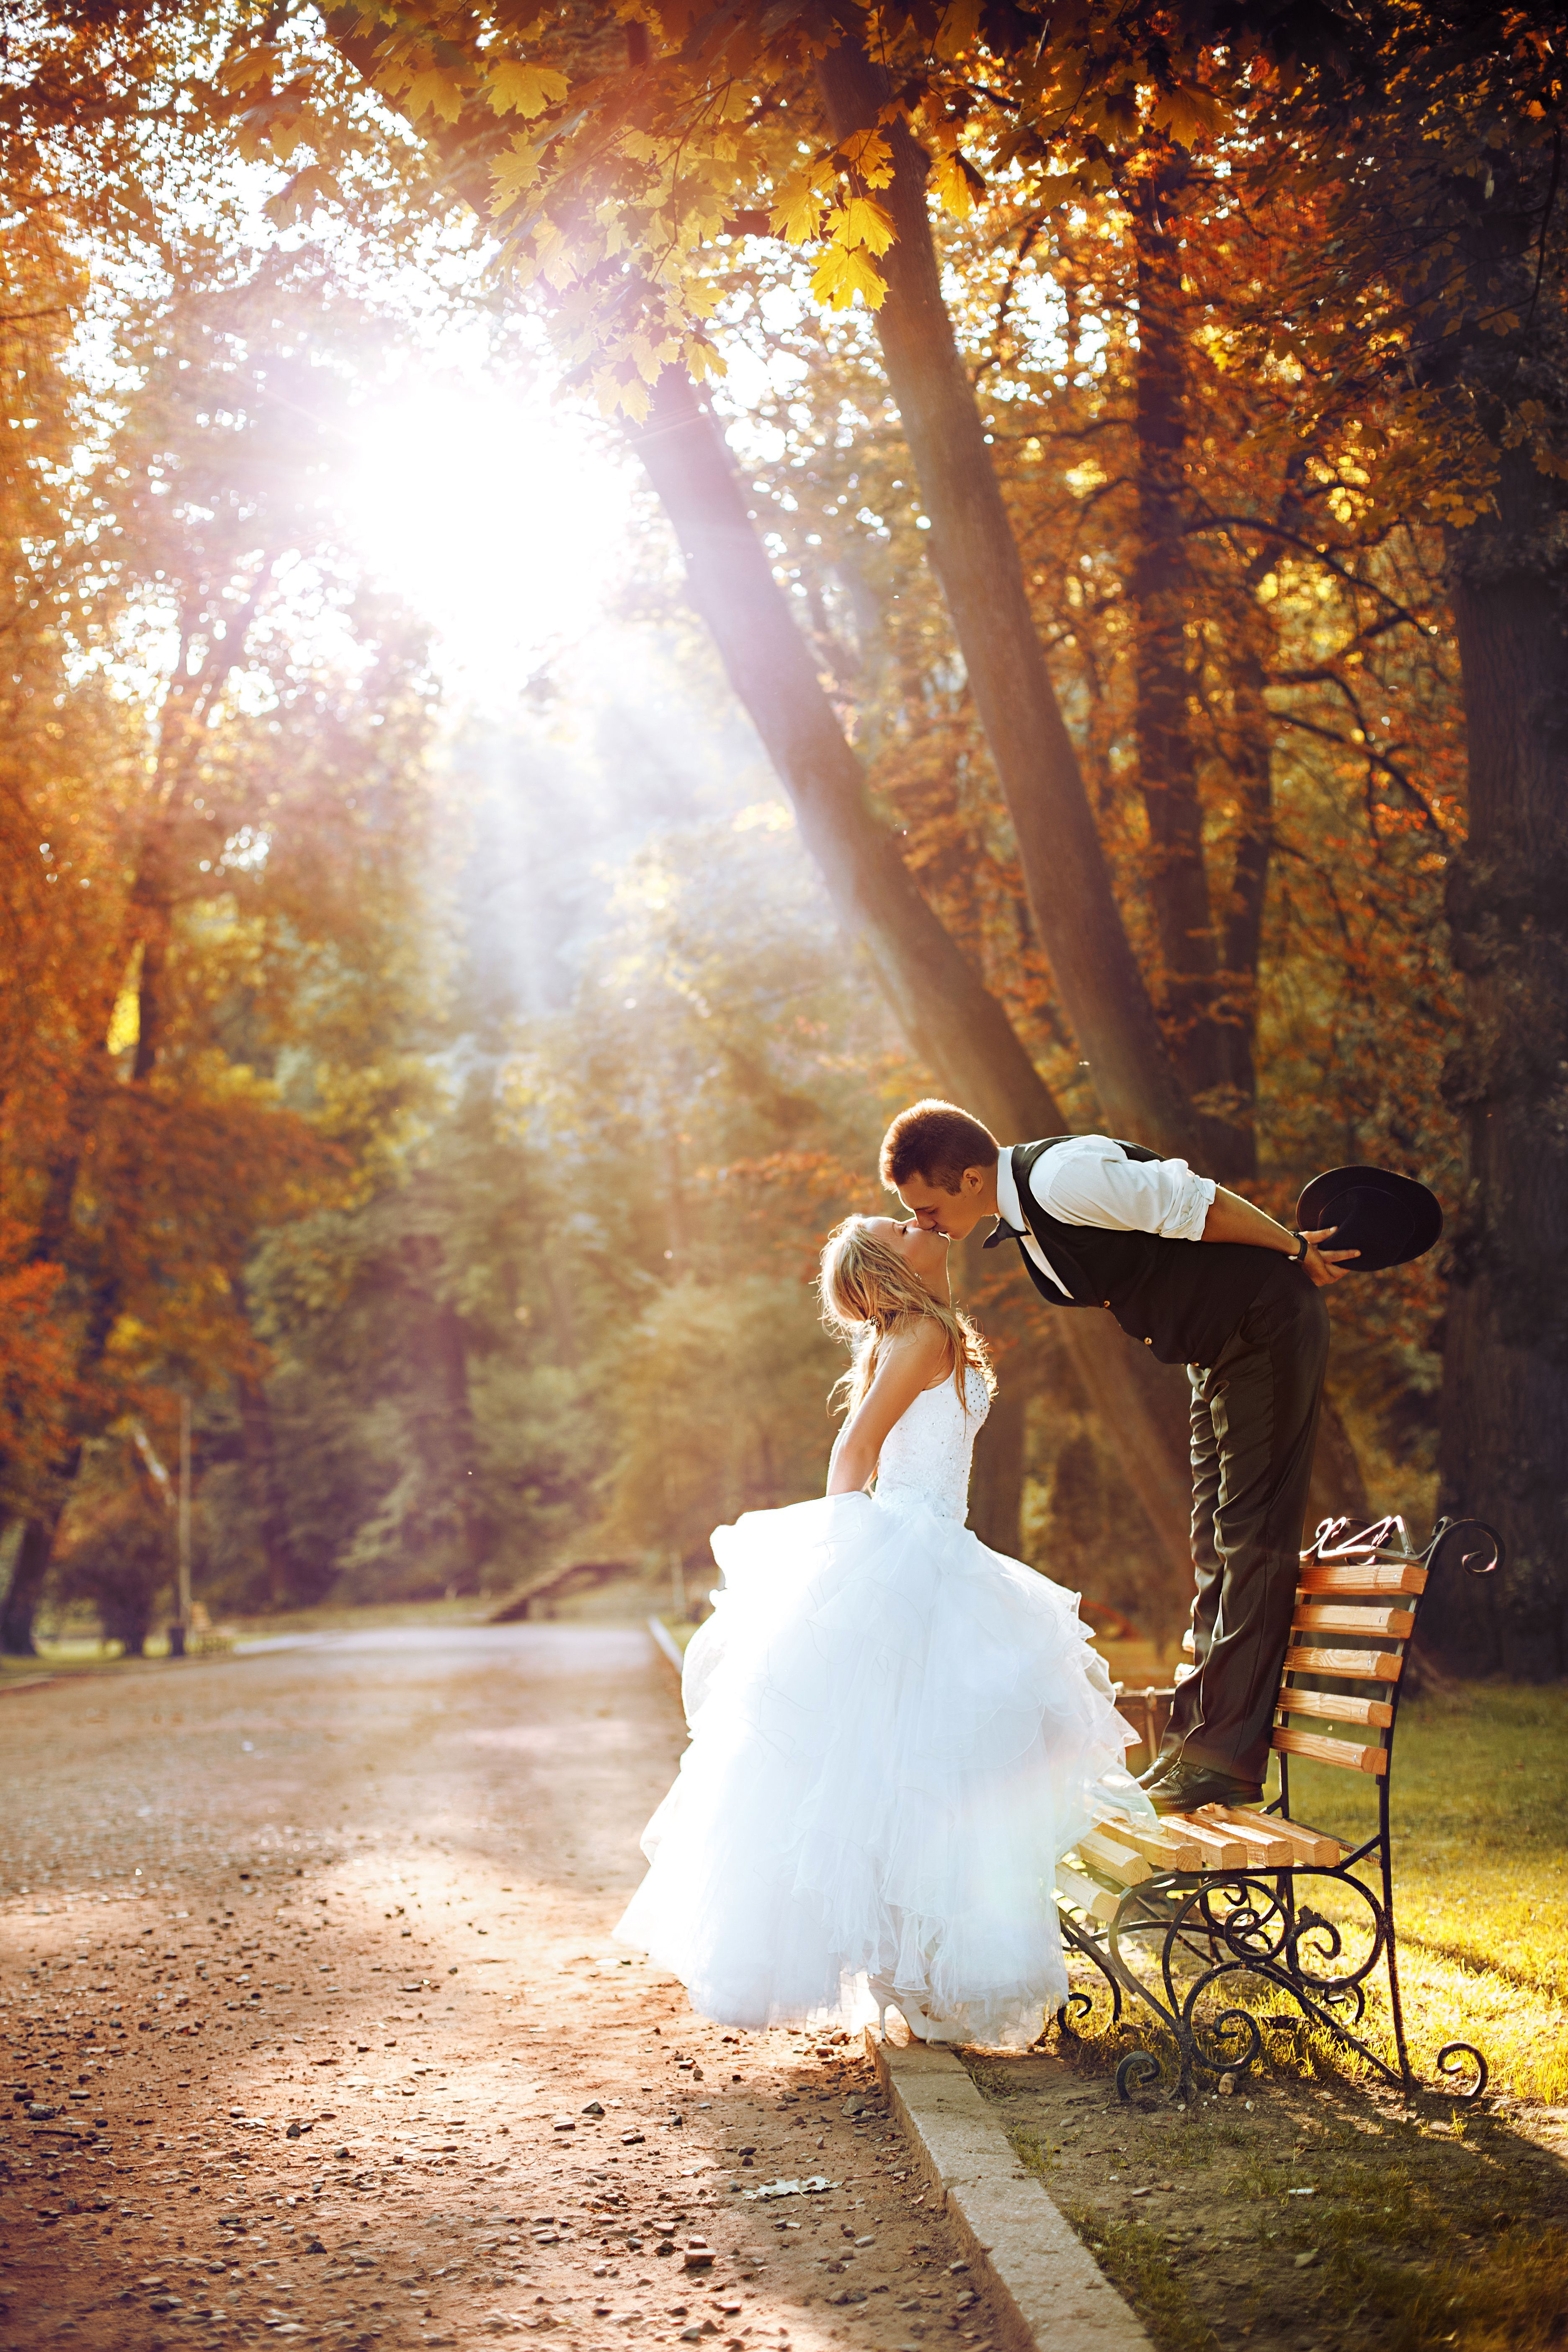 European bride and groom kissing in the park baby shower ideas